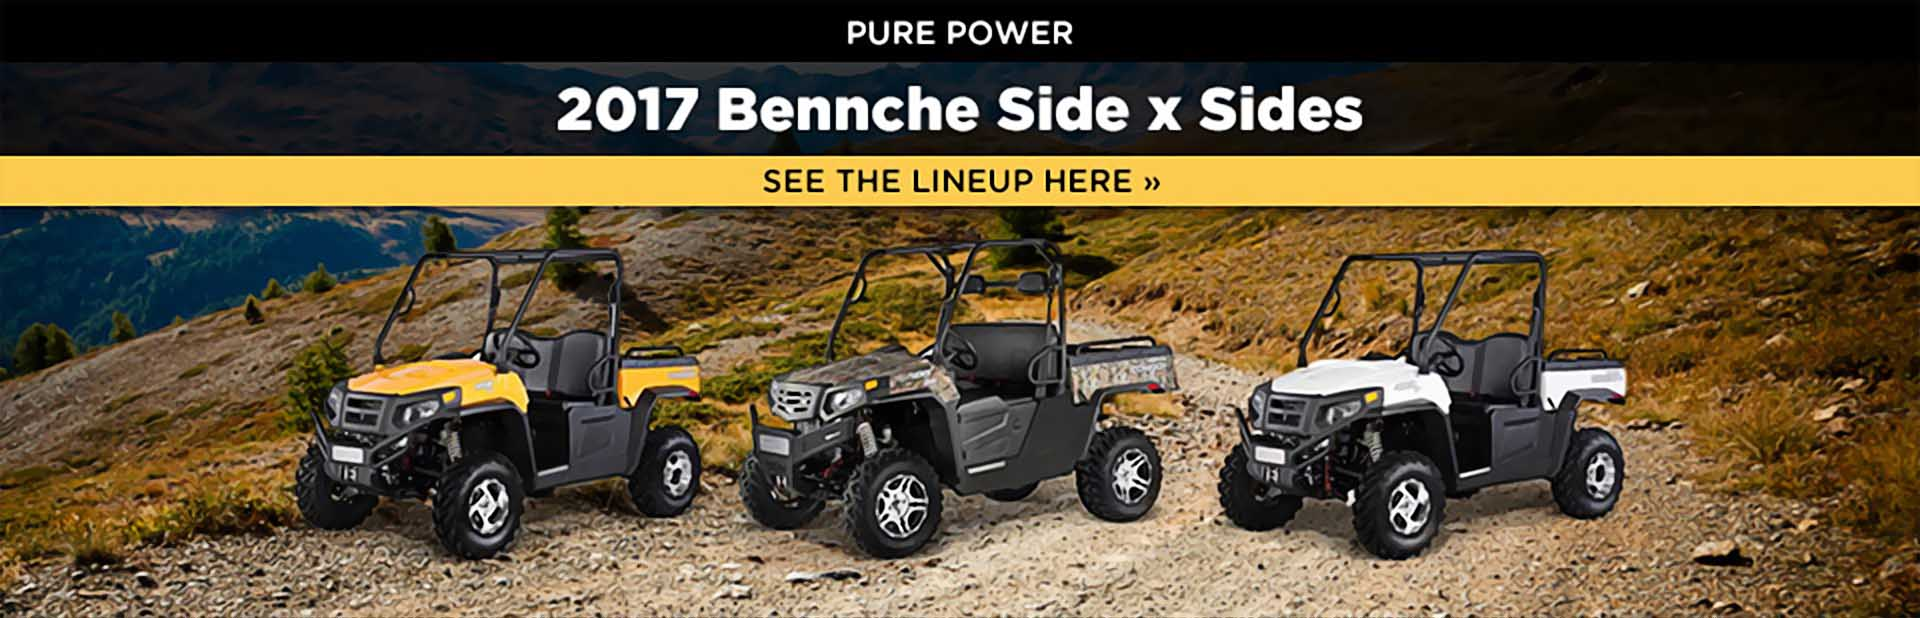 2017 Bennche Side x Sides: Click here to view the models.